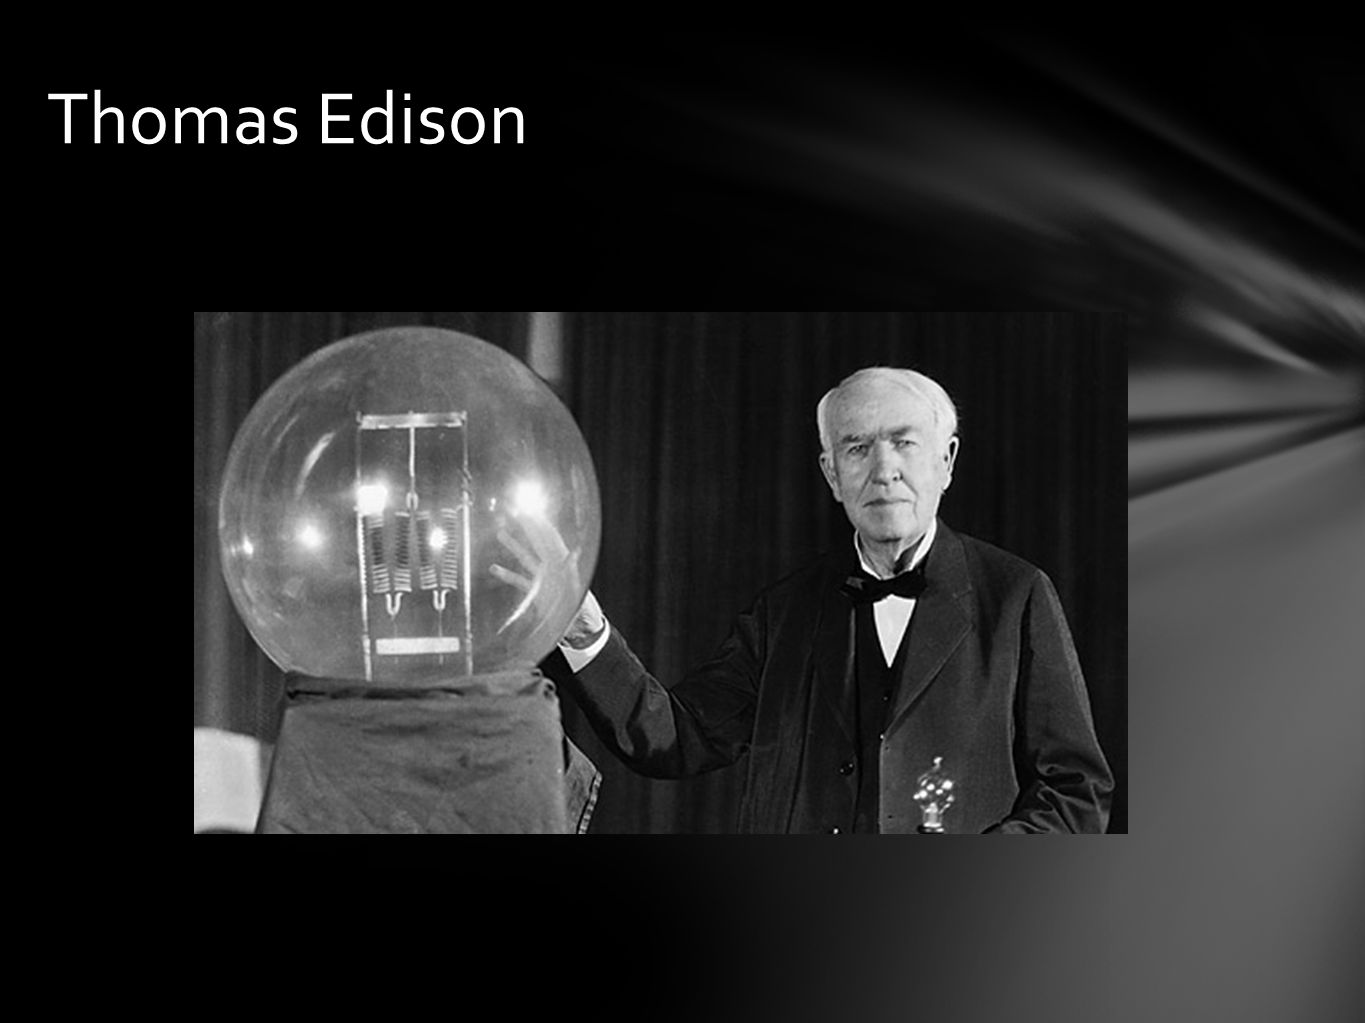 effects of thomas edison Edison contributions to the film industry - black maria film festival edison contributions to the film industry - black maria film festival 03/02/2012 subscribe to.